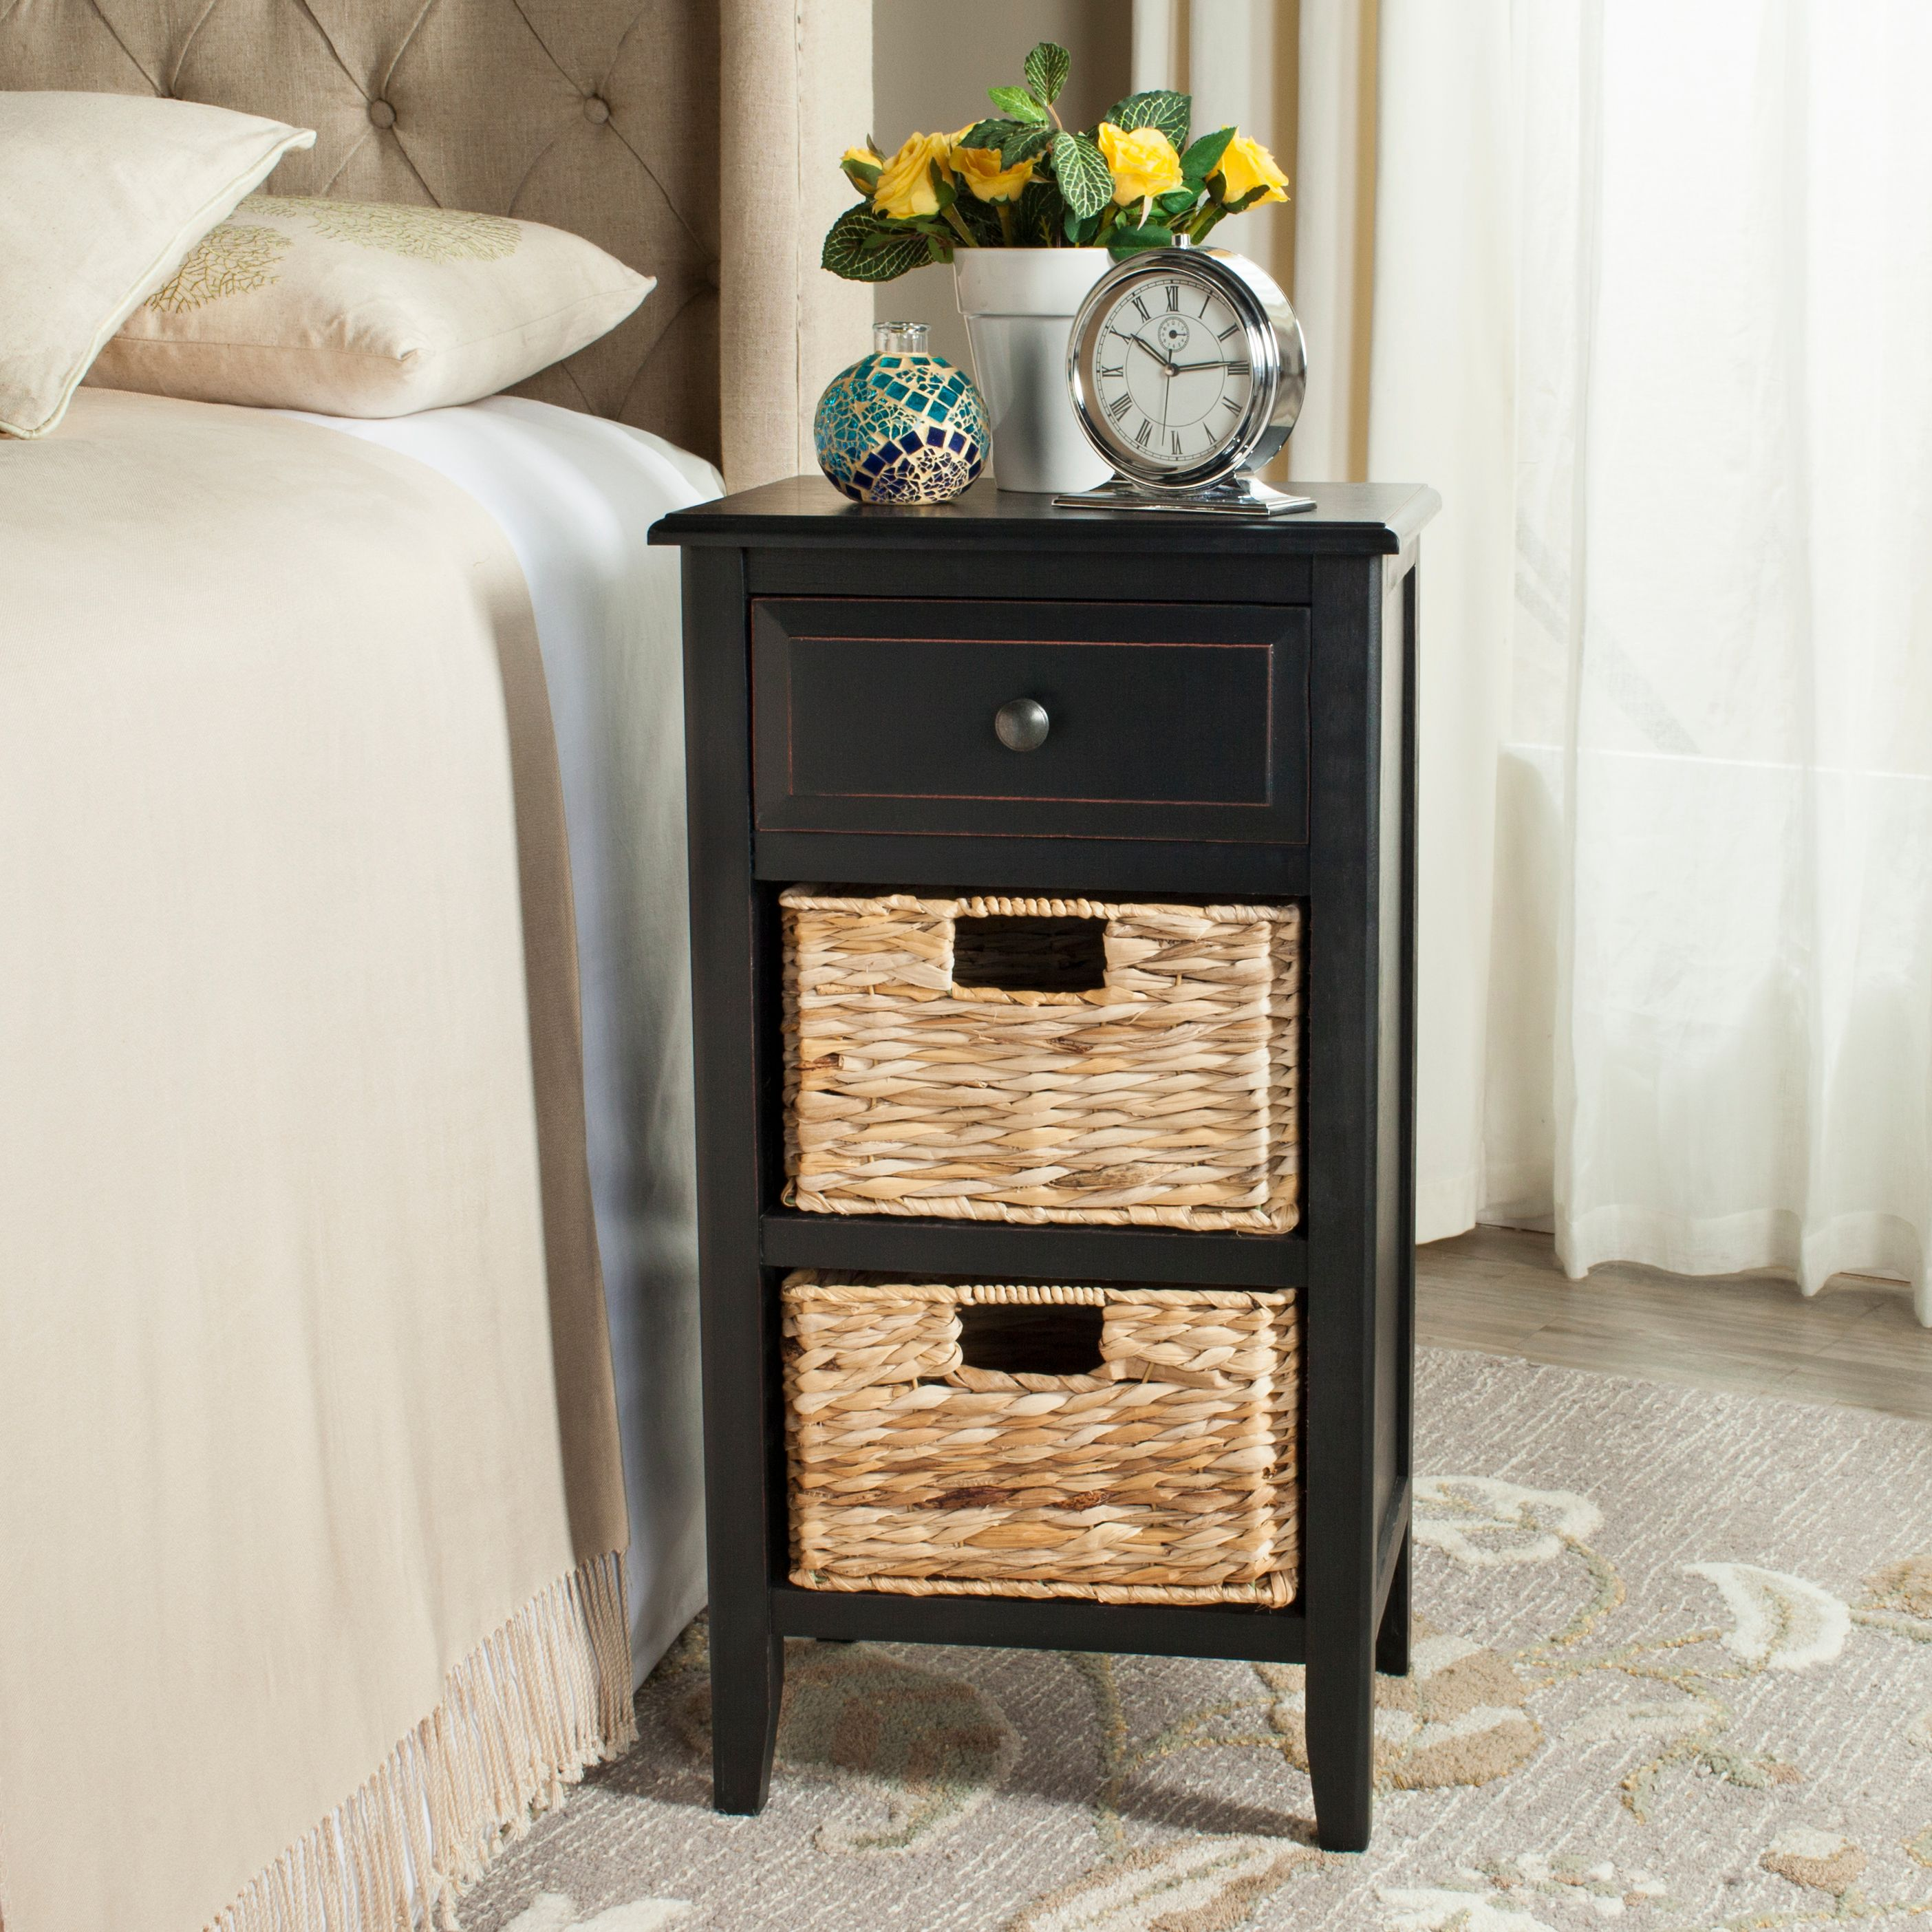 Safavieh Everly Contemporary Side Table with Drawer and Two Baskets